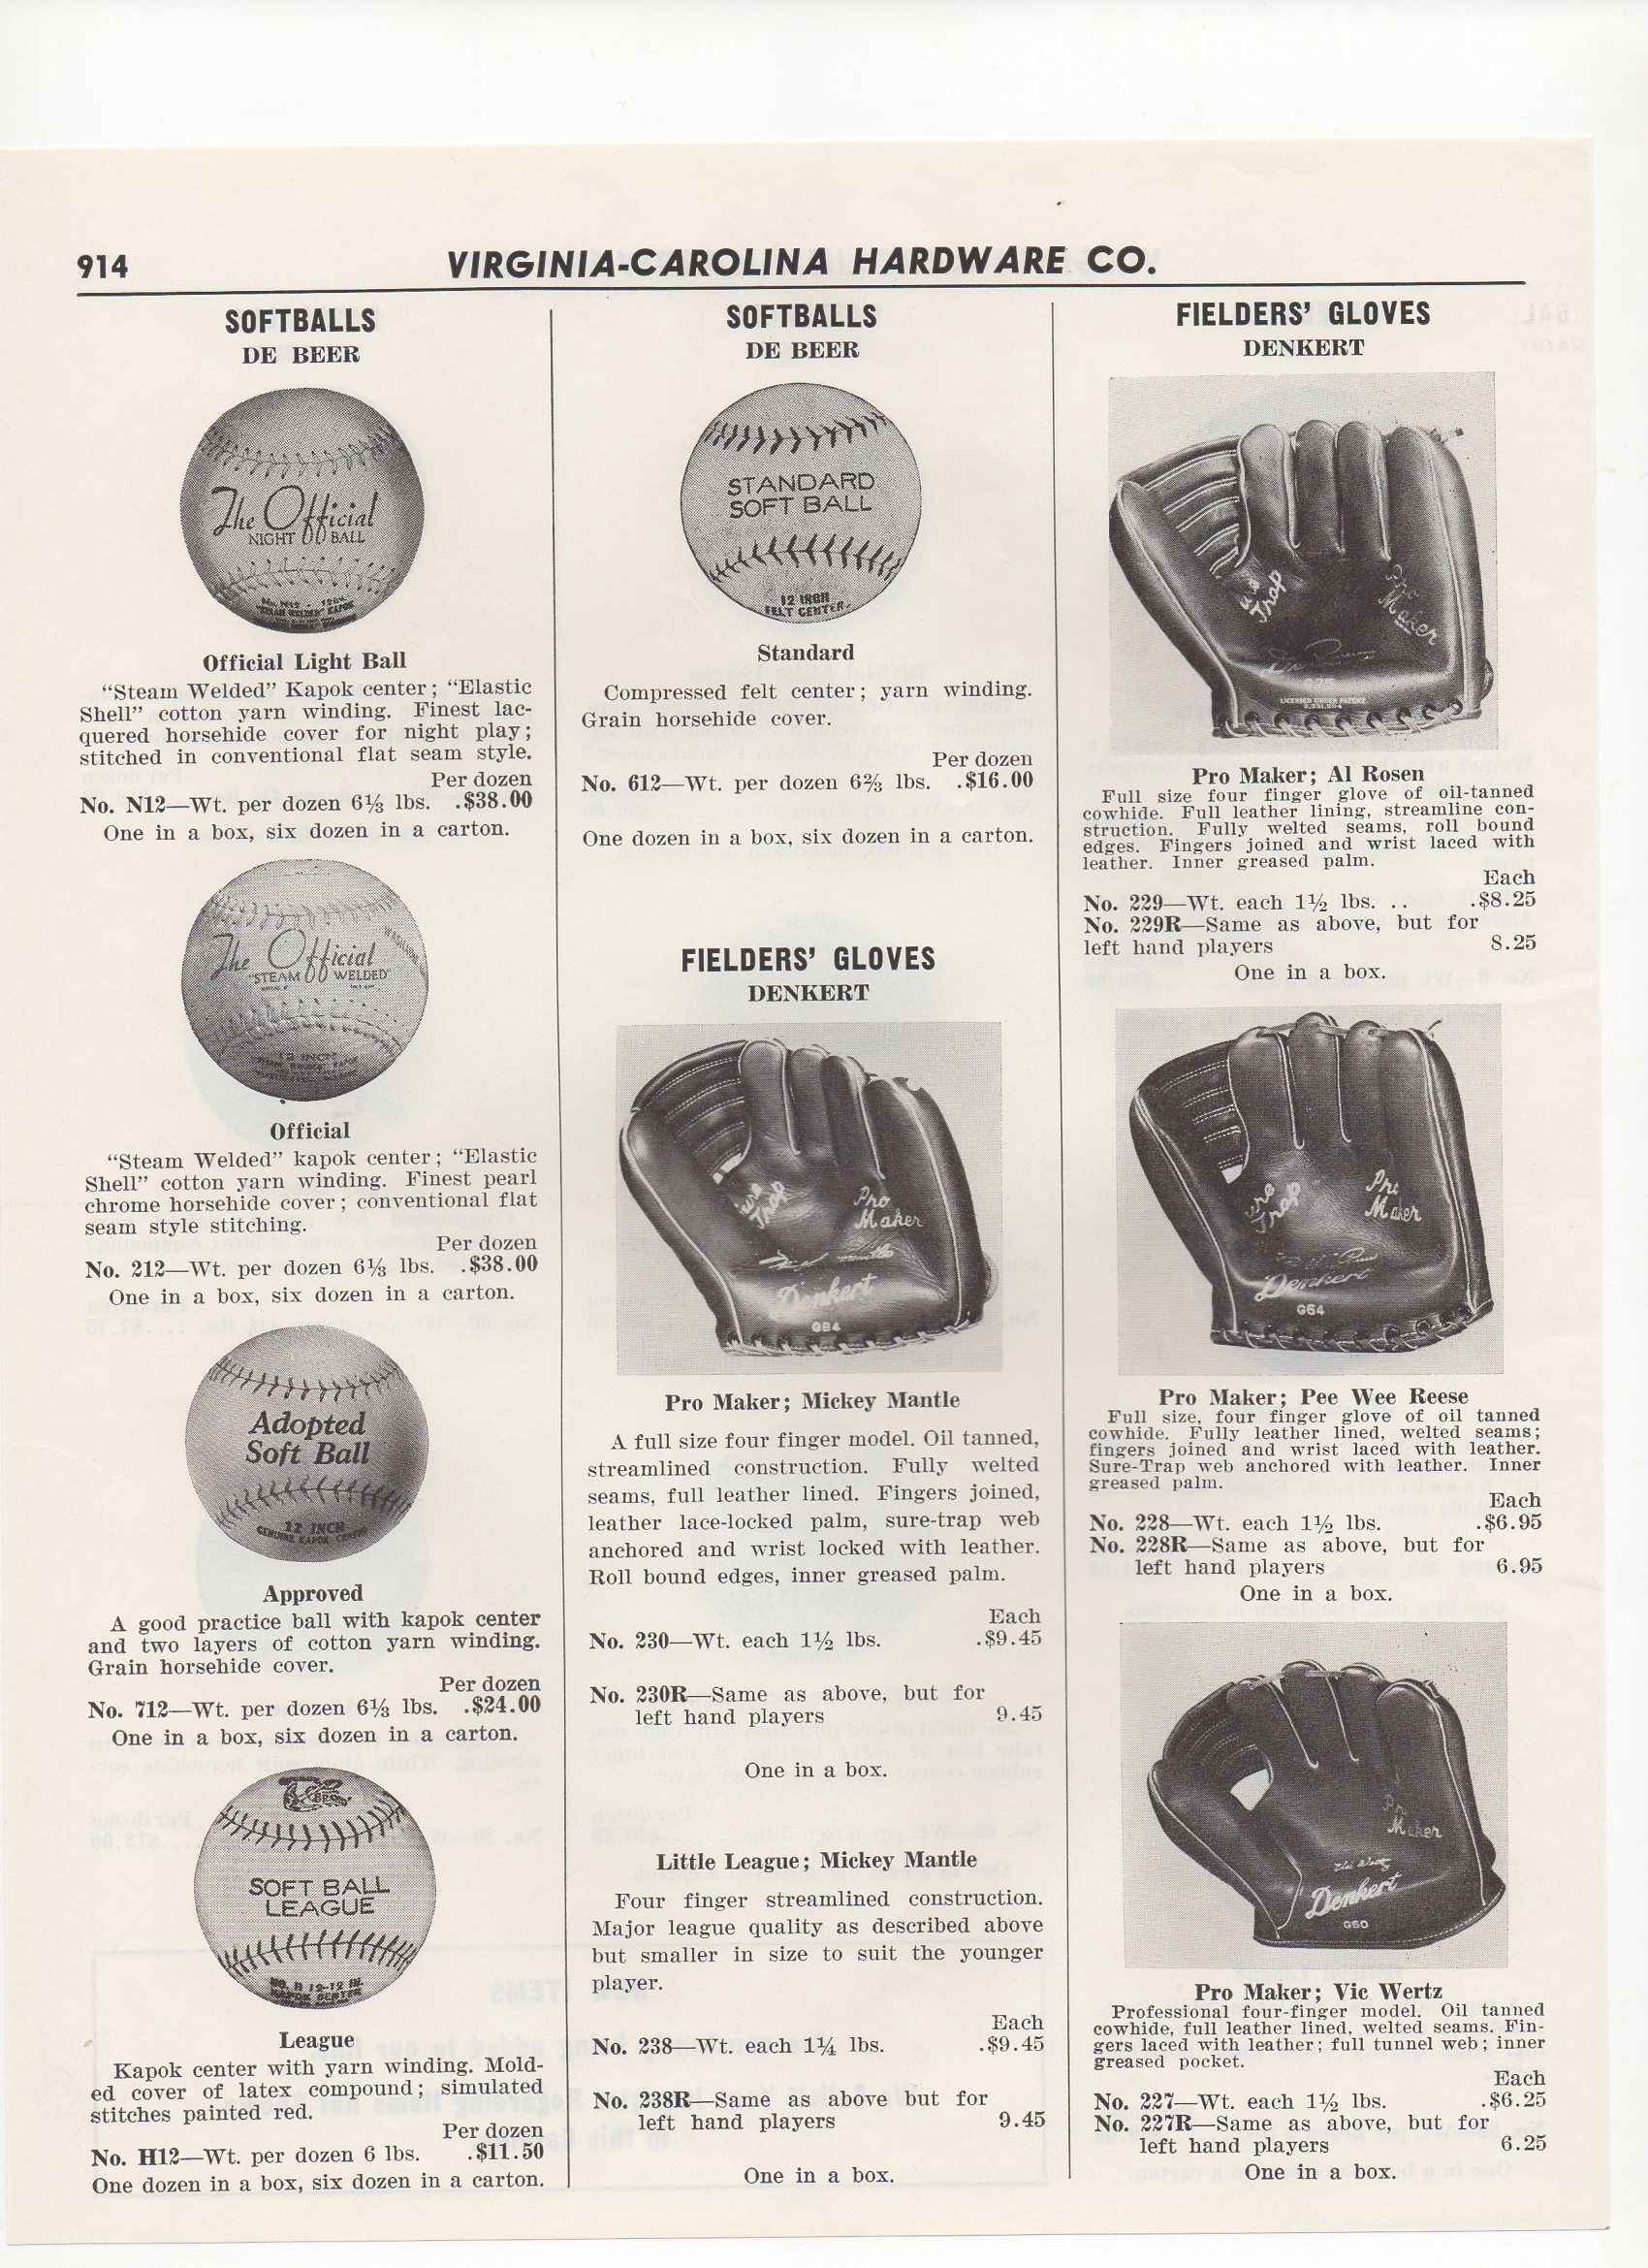 1956 virginia-carolina hardware company